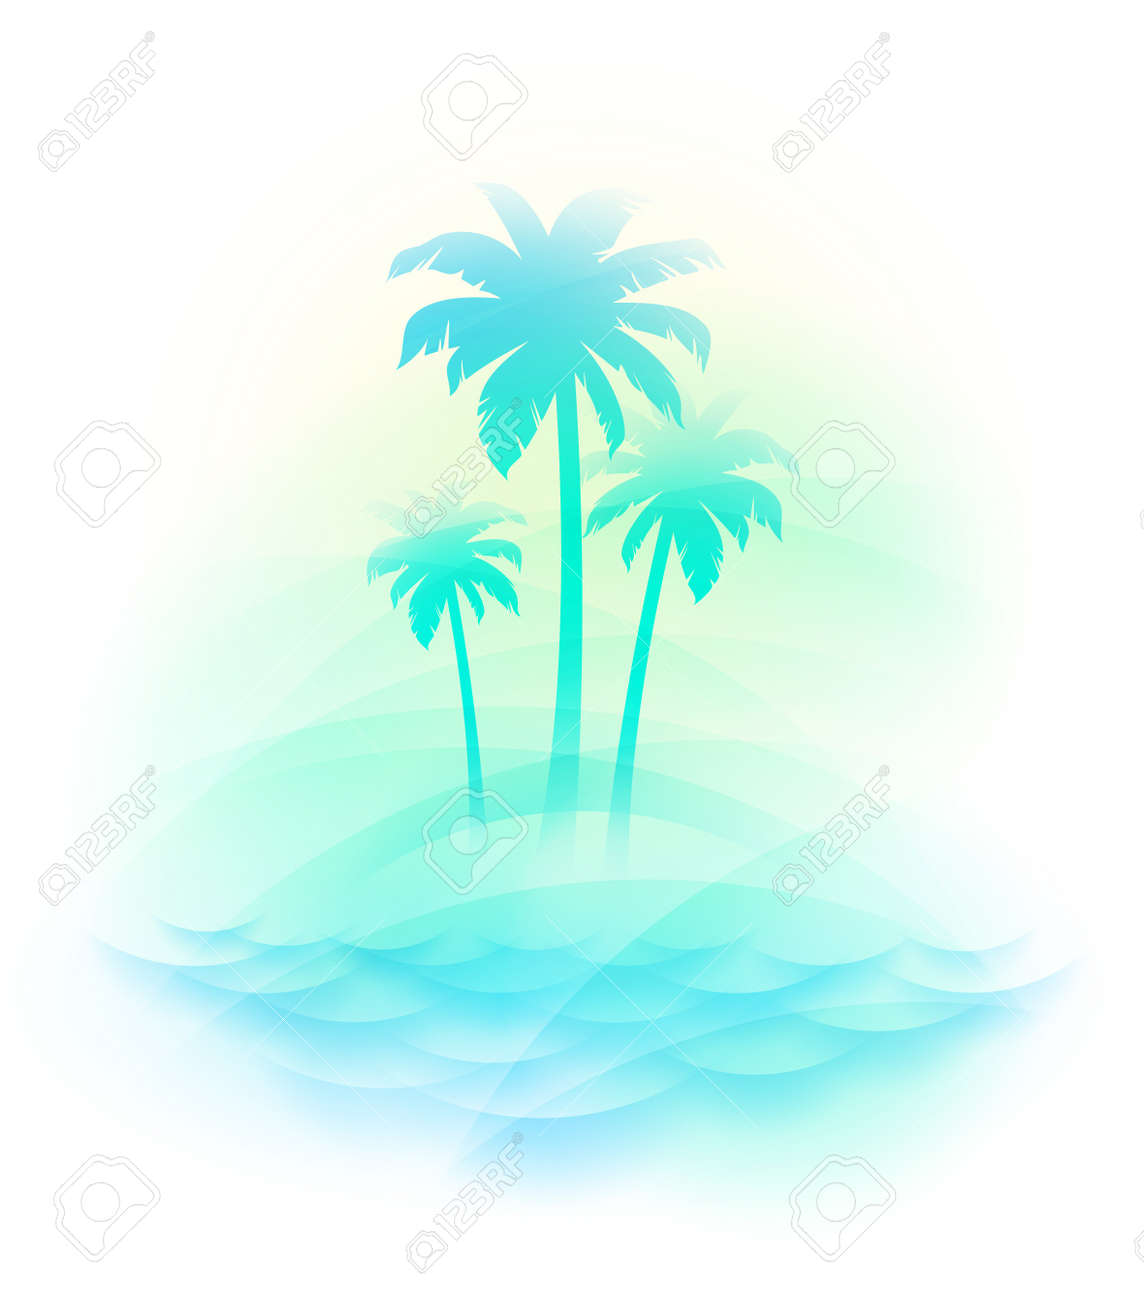 Vector illustration - Tropical island Stock Vector - 10179531